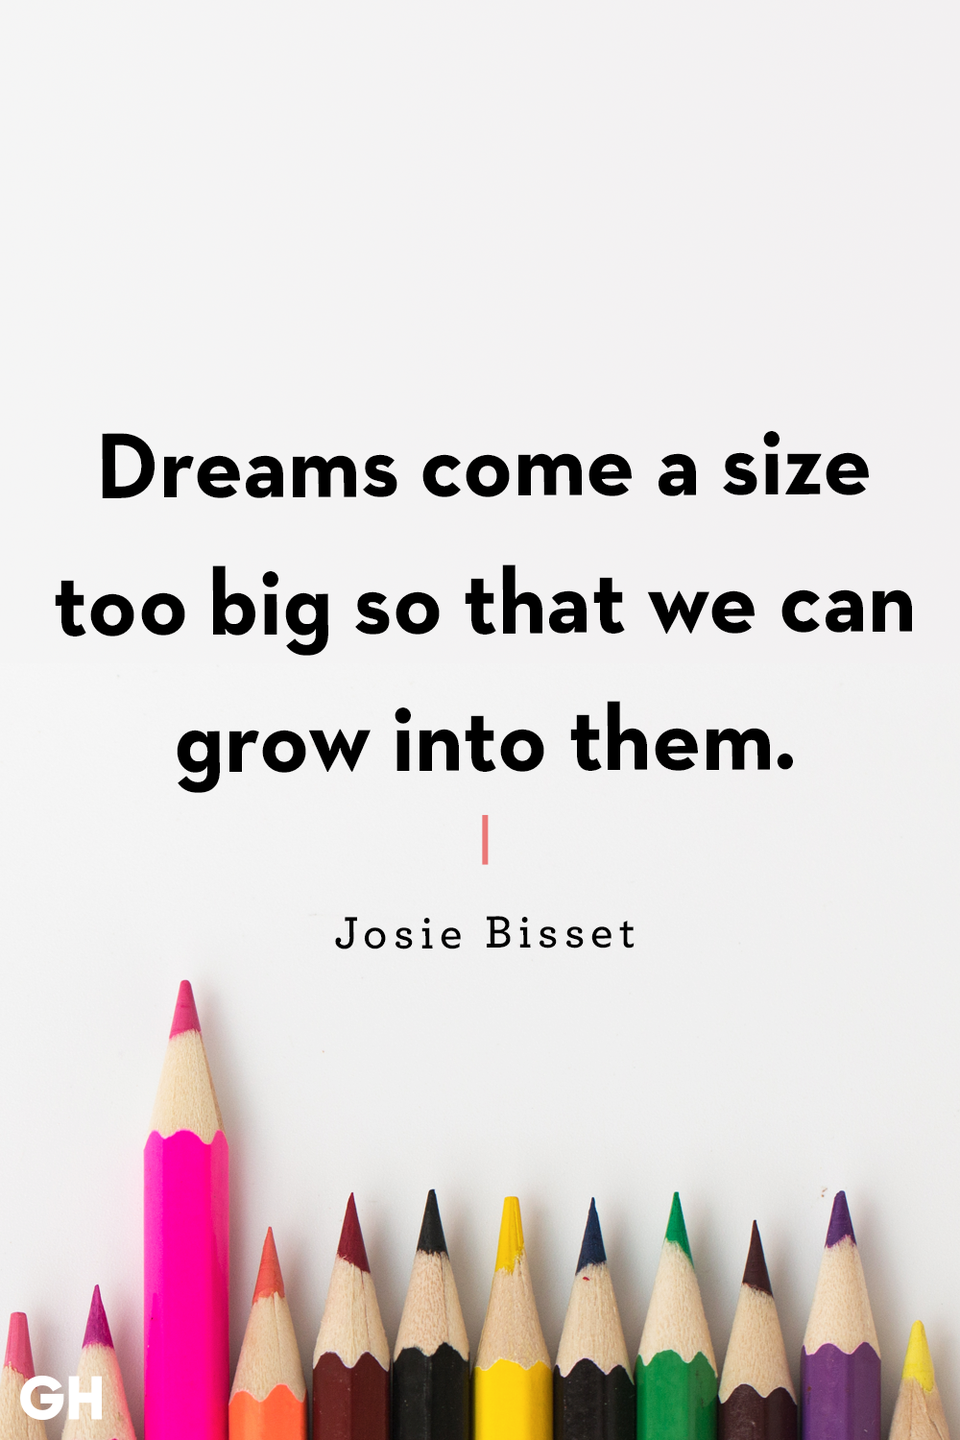 <p>Dreams come a size too big so that we can grow into them.</p>